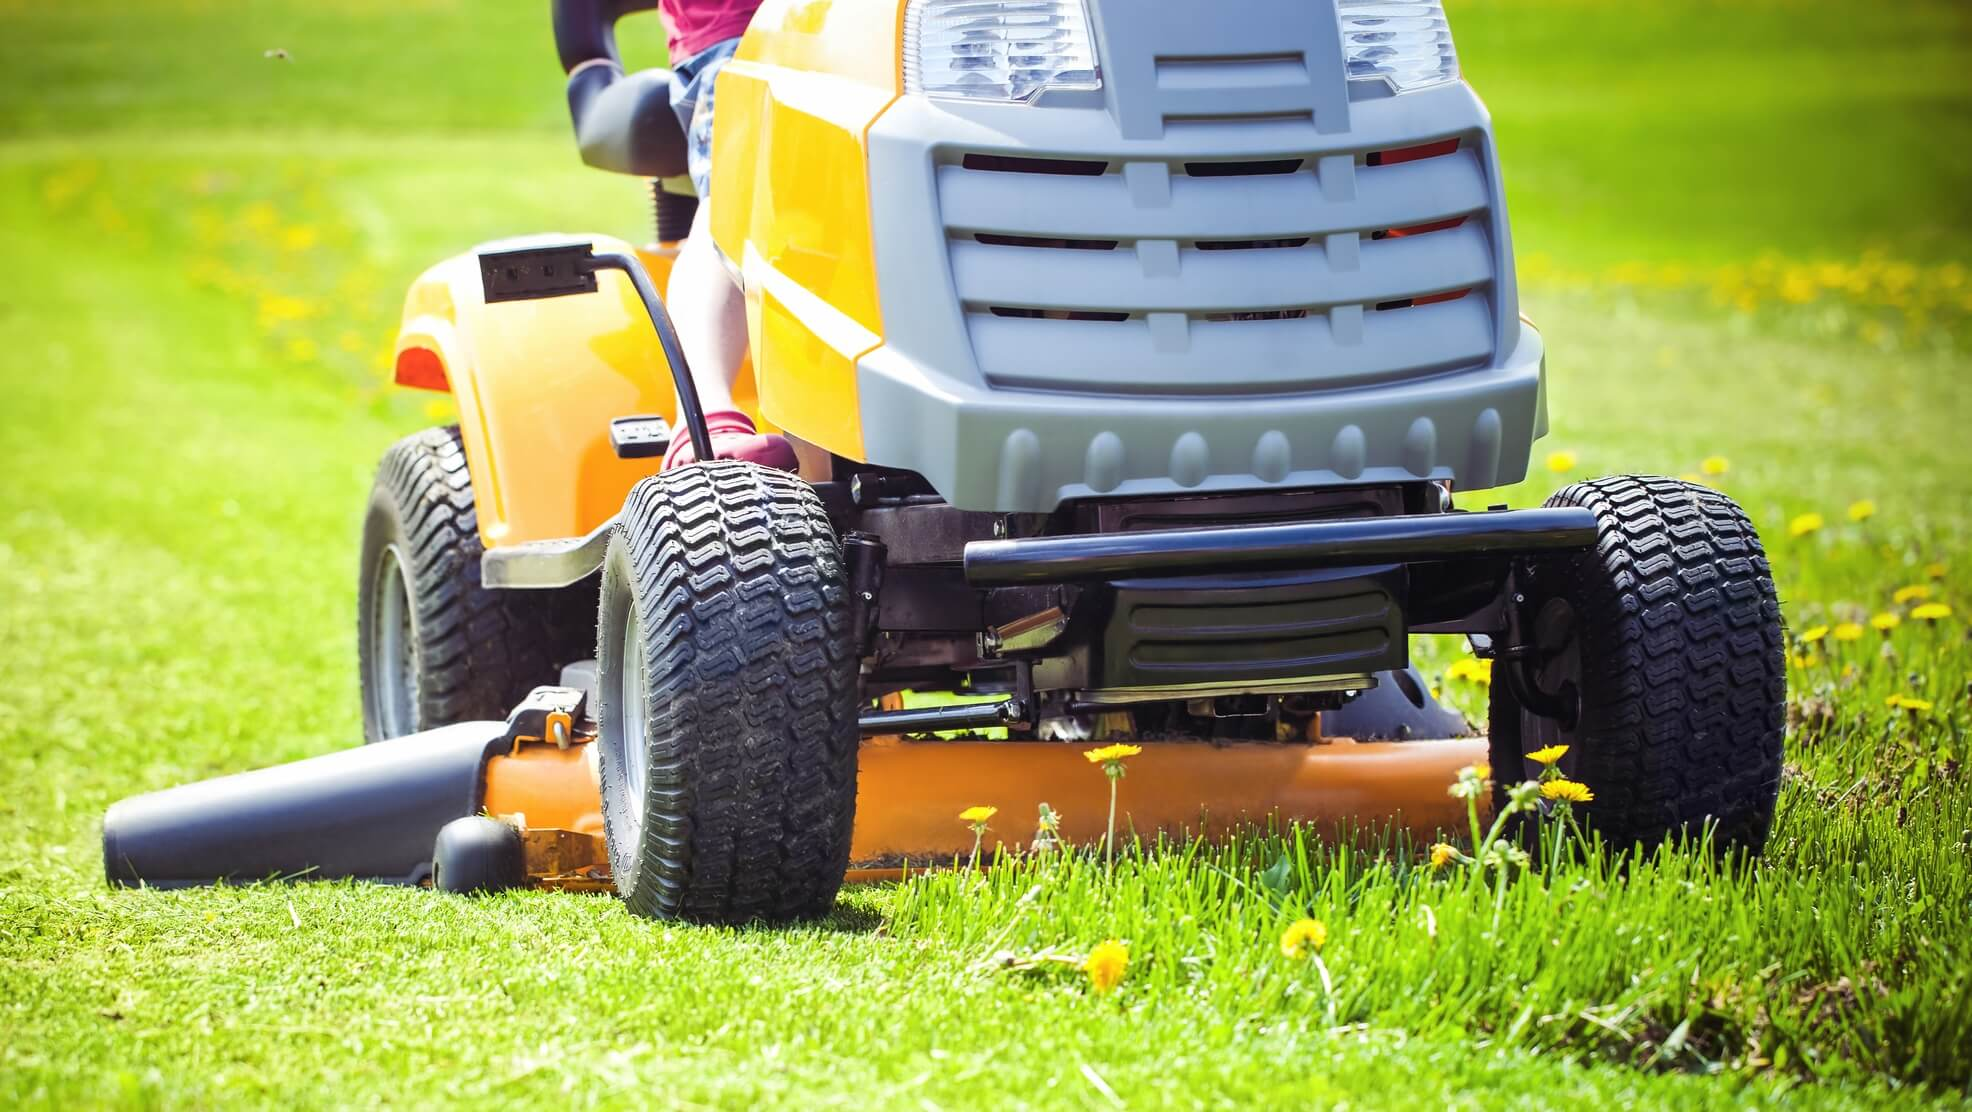 Image result for Over mowing can be harmful